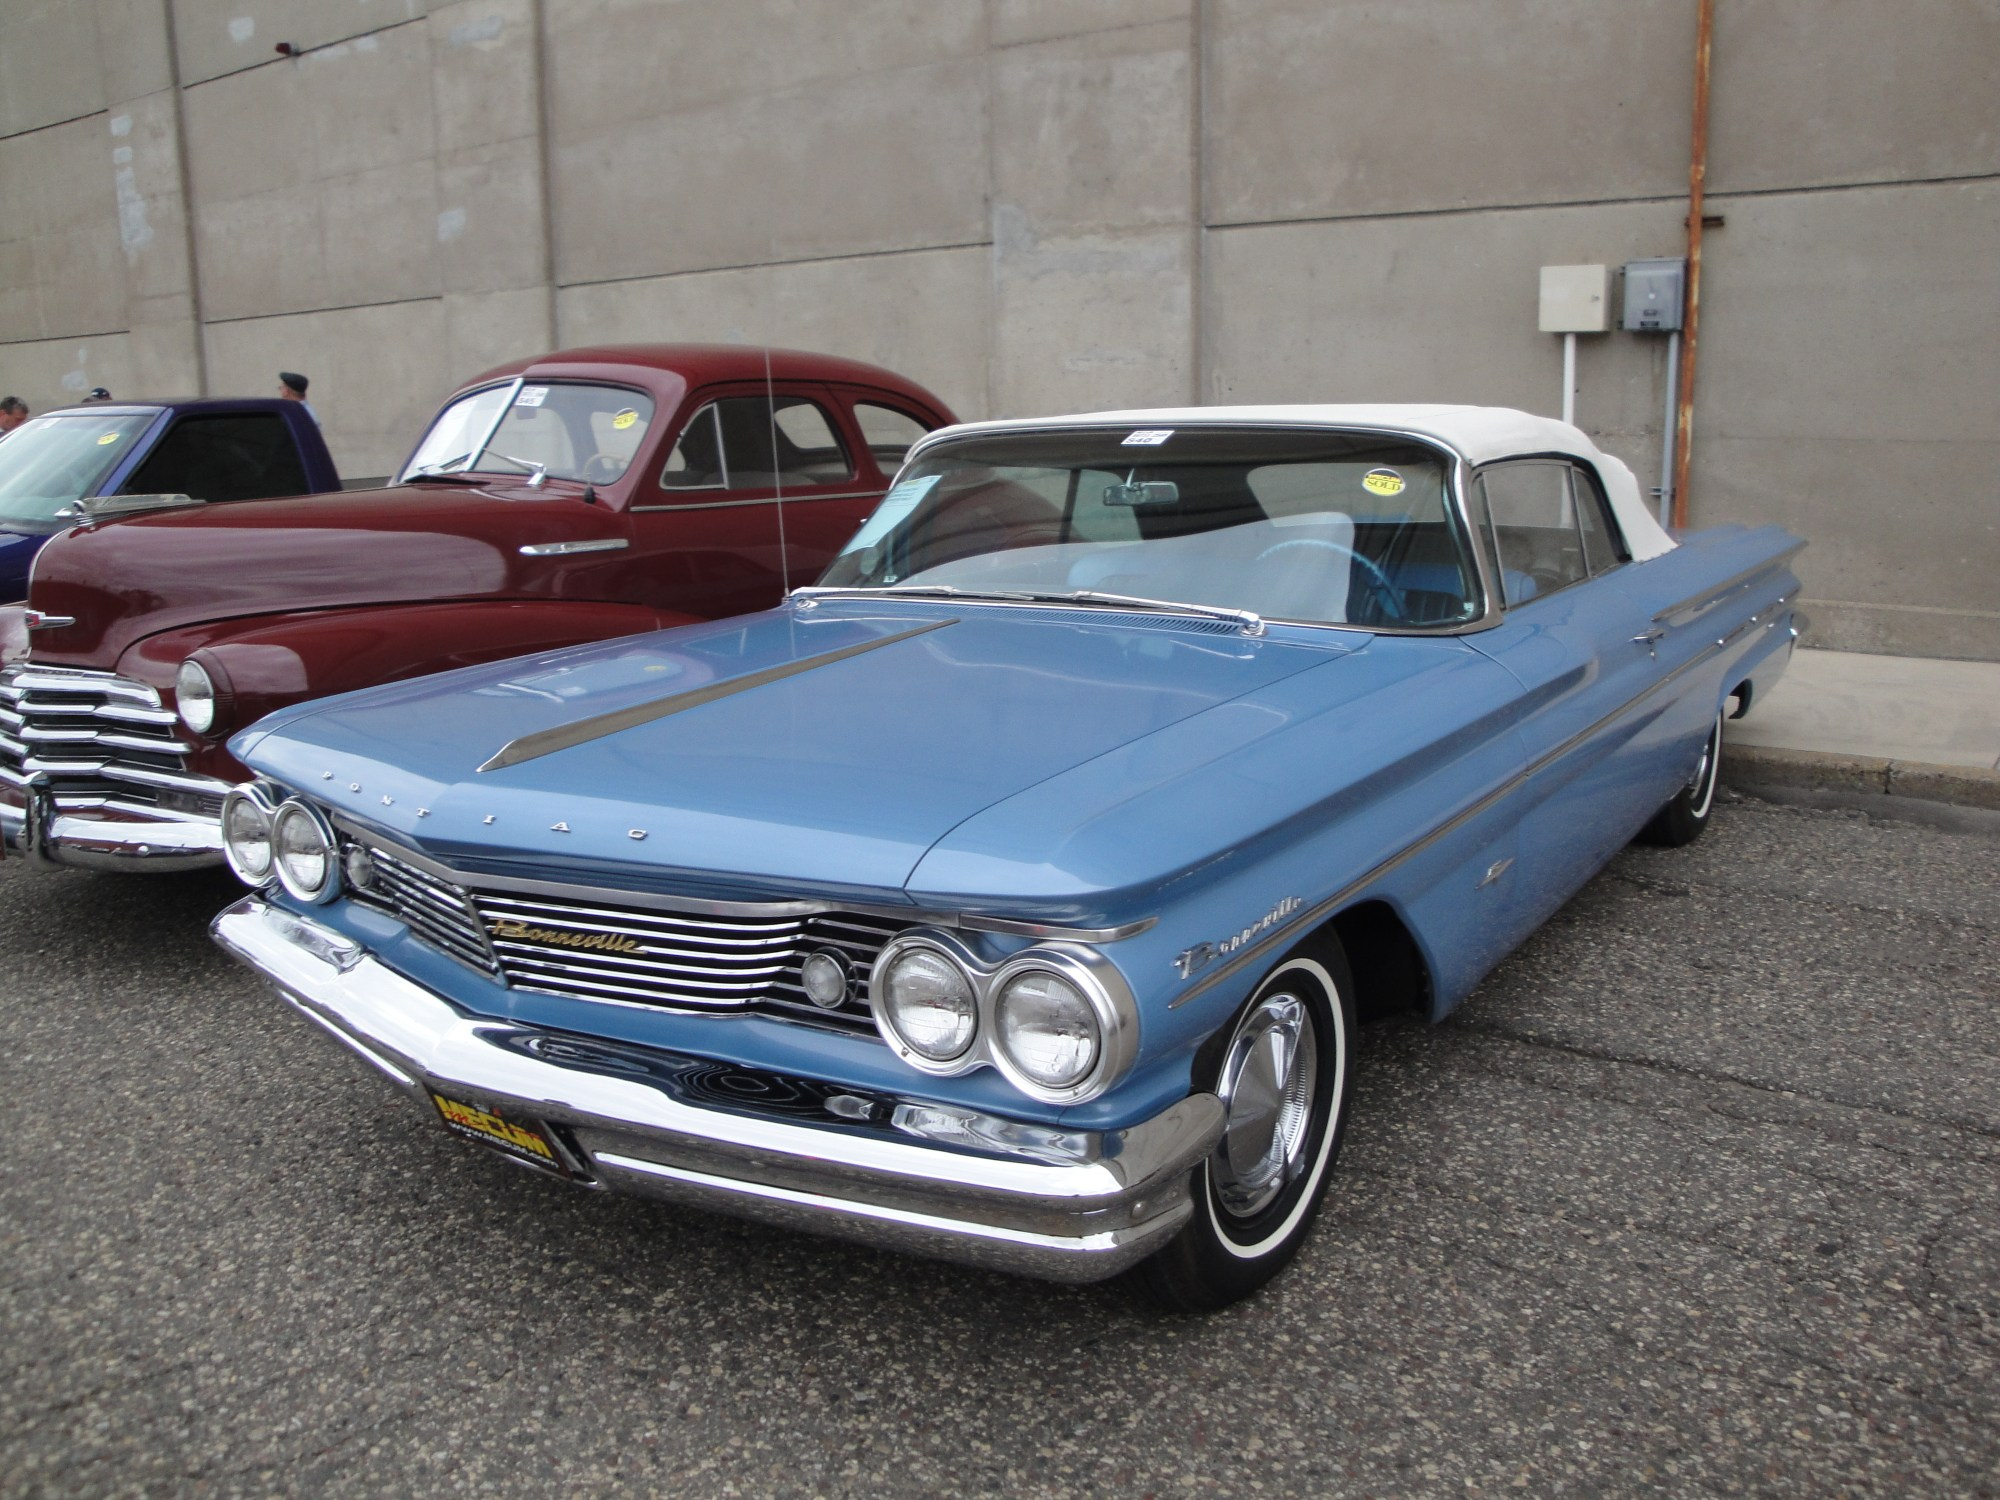 hight resolution of 60 pontiac bonneville jpg